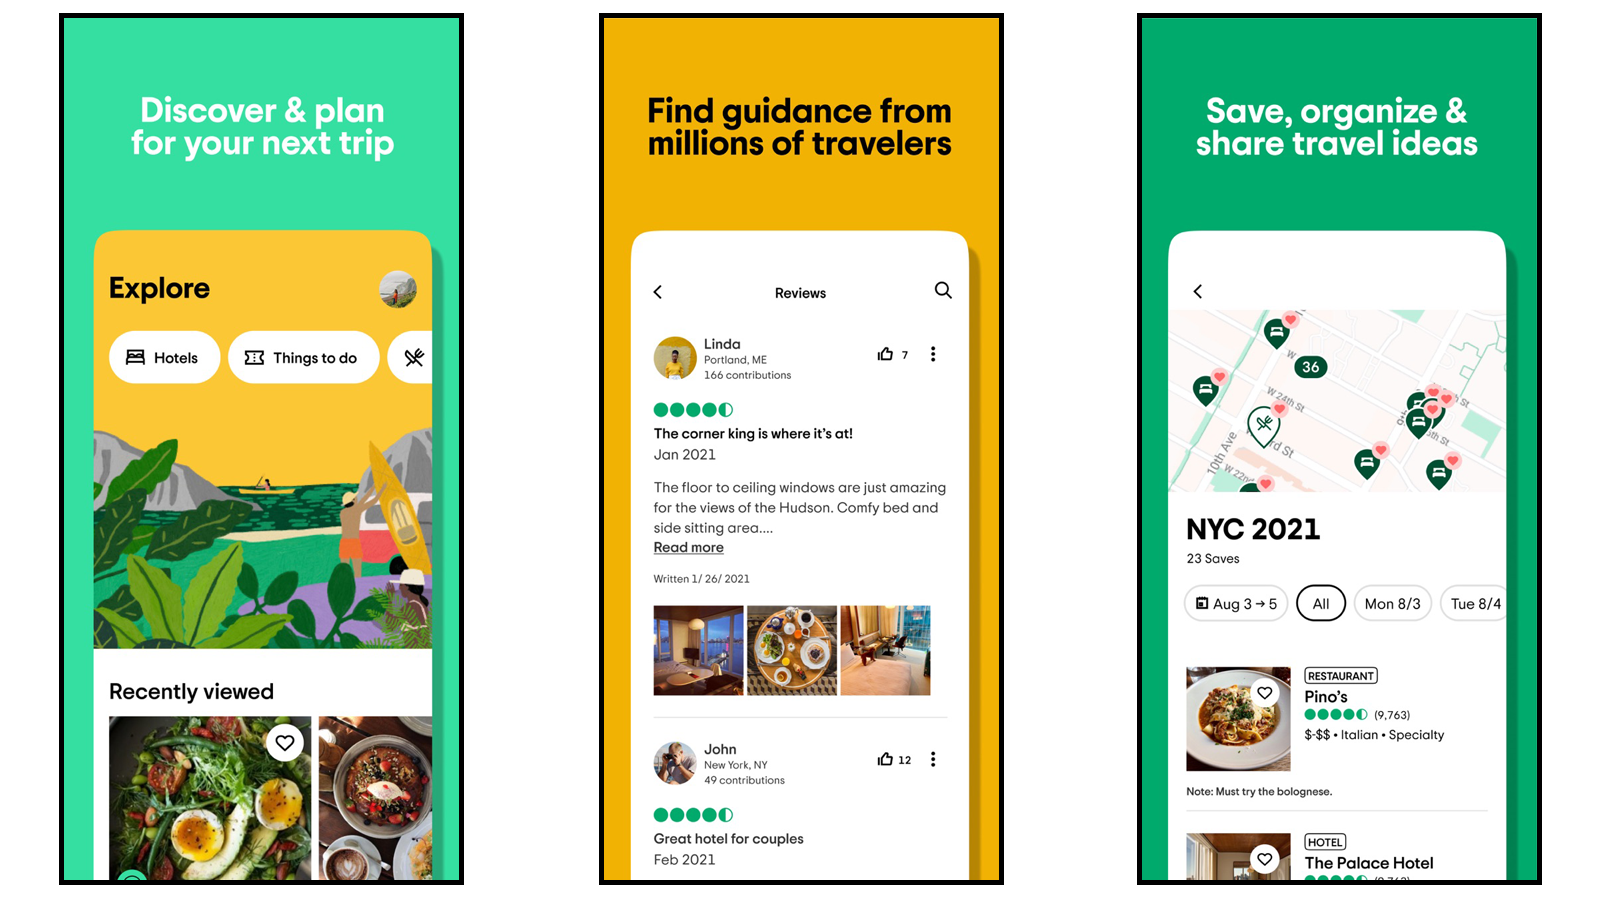 Tripadvisor app pages showing explore tab, traveler forums, and trip organizer